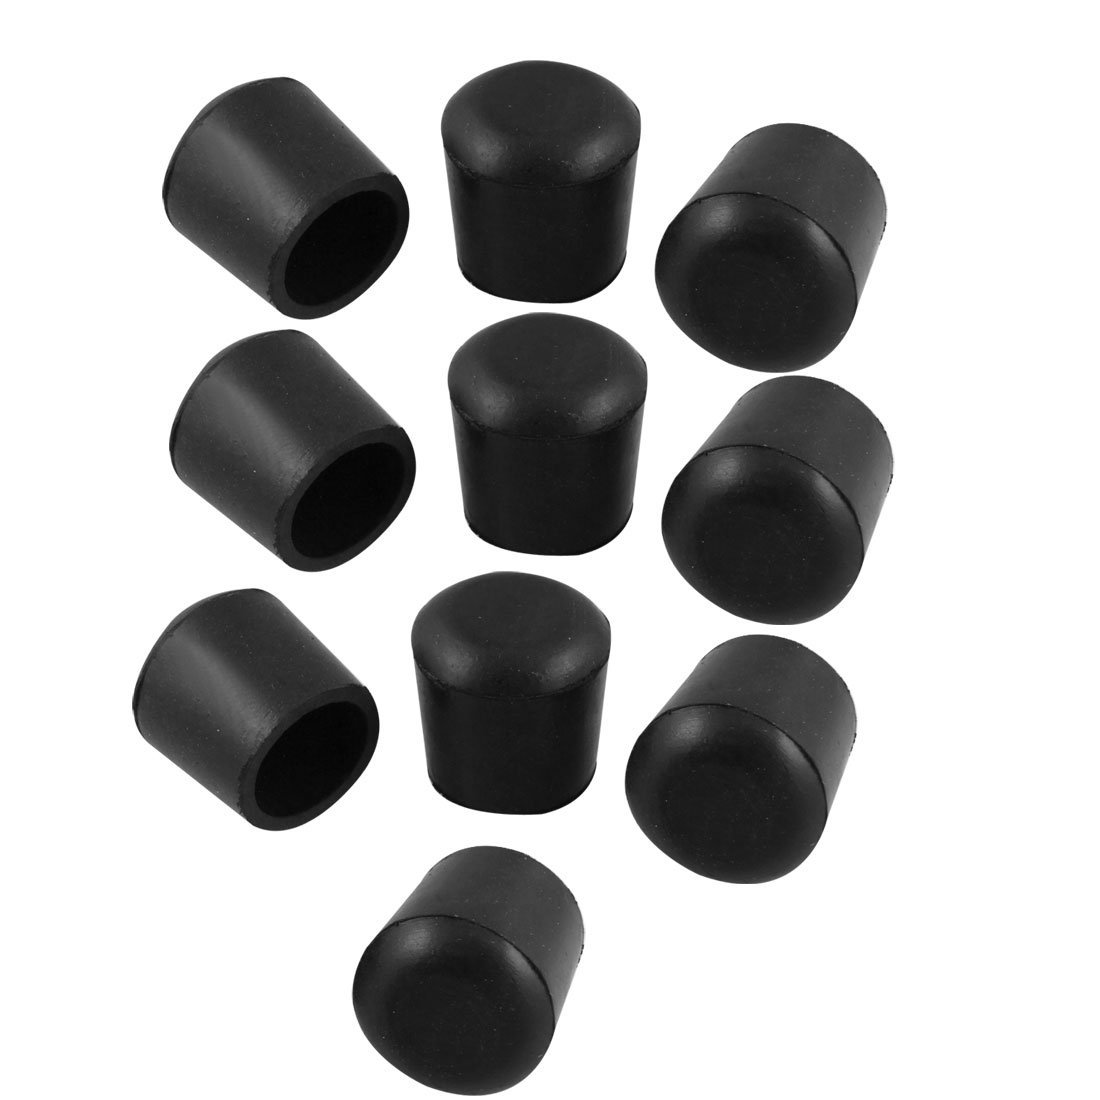 SZS Hot Black 10 Pcs 25mm Cone Shaped Dia Furniture Table Chair Rubber Foot Pads Free Shipping